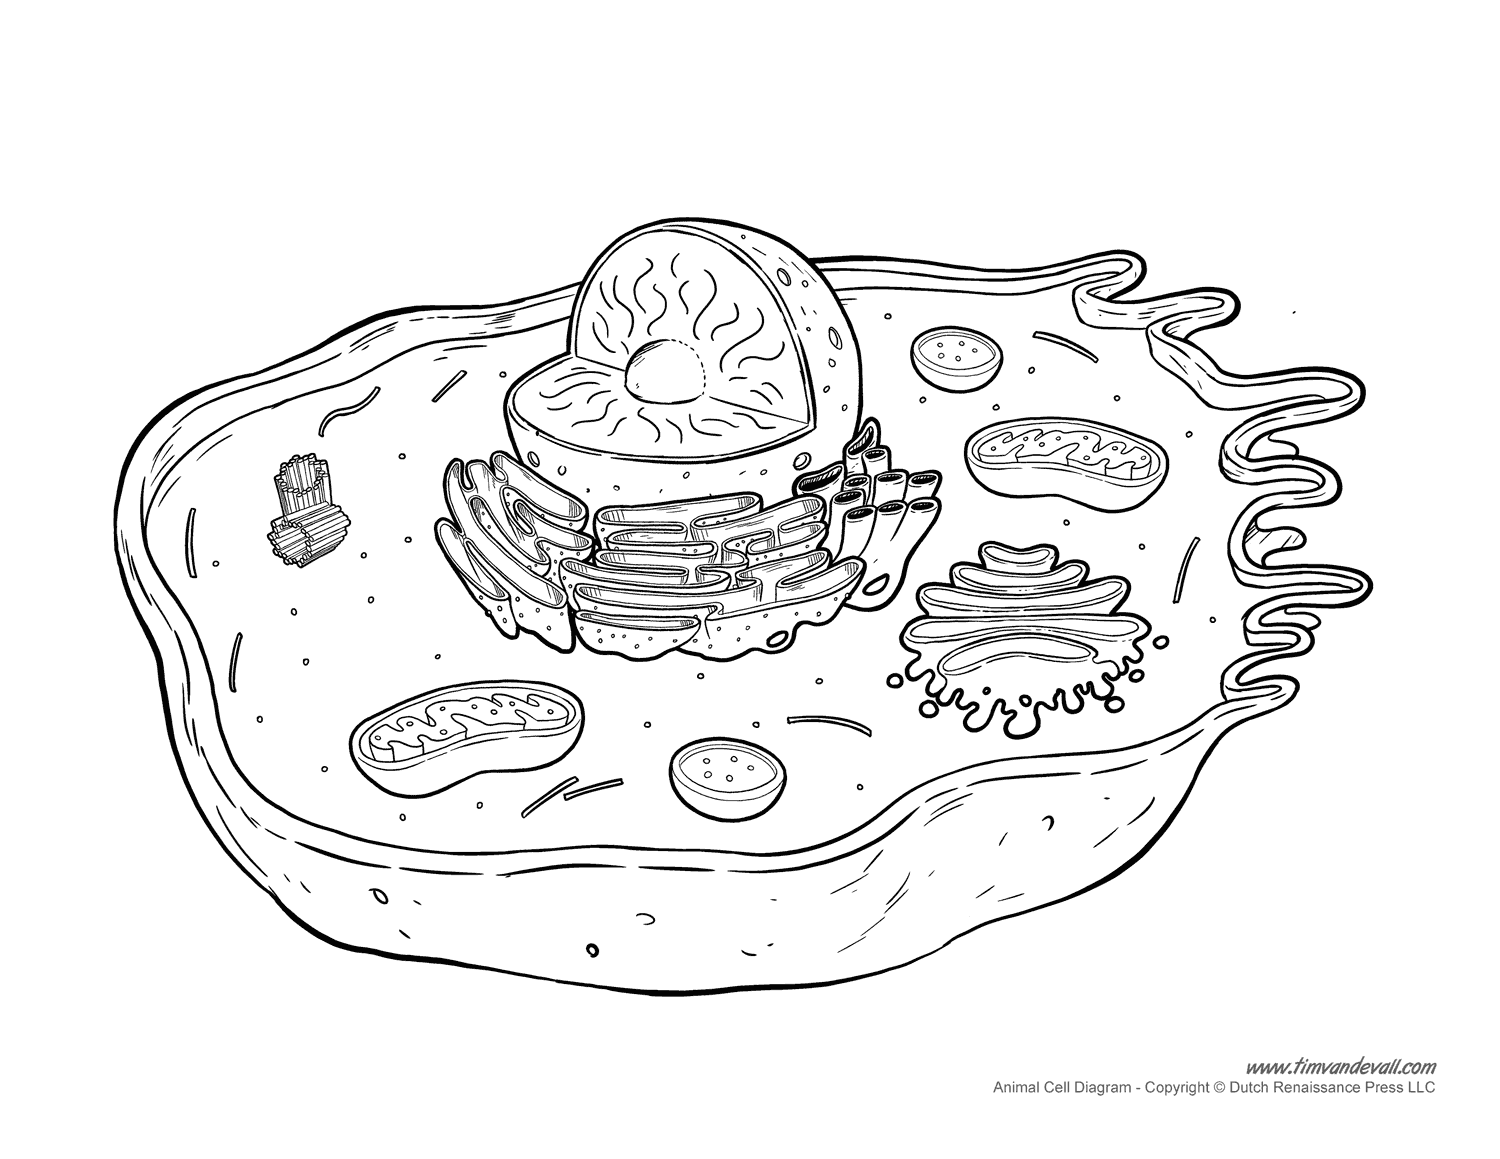 animal-cell-diagram-not-labeled - Tim's Printables